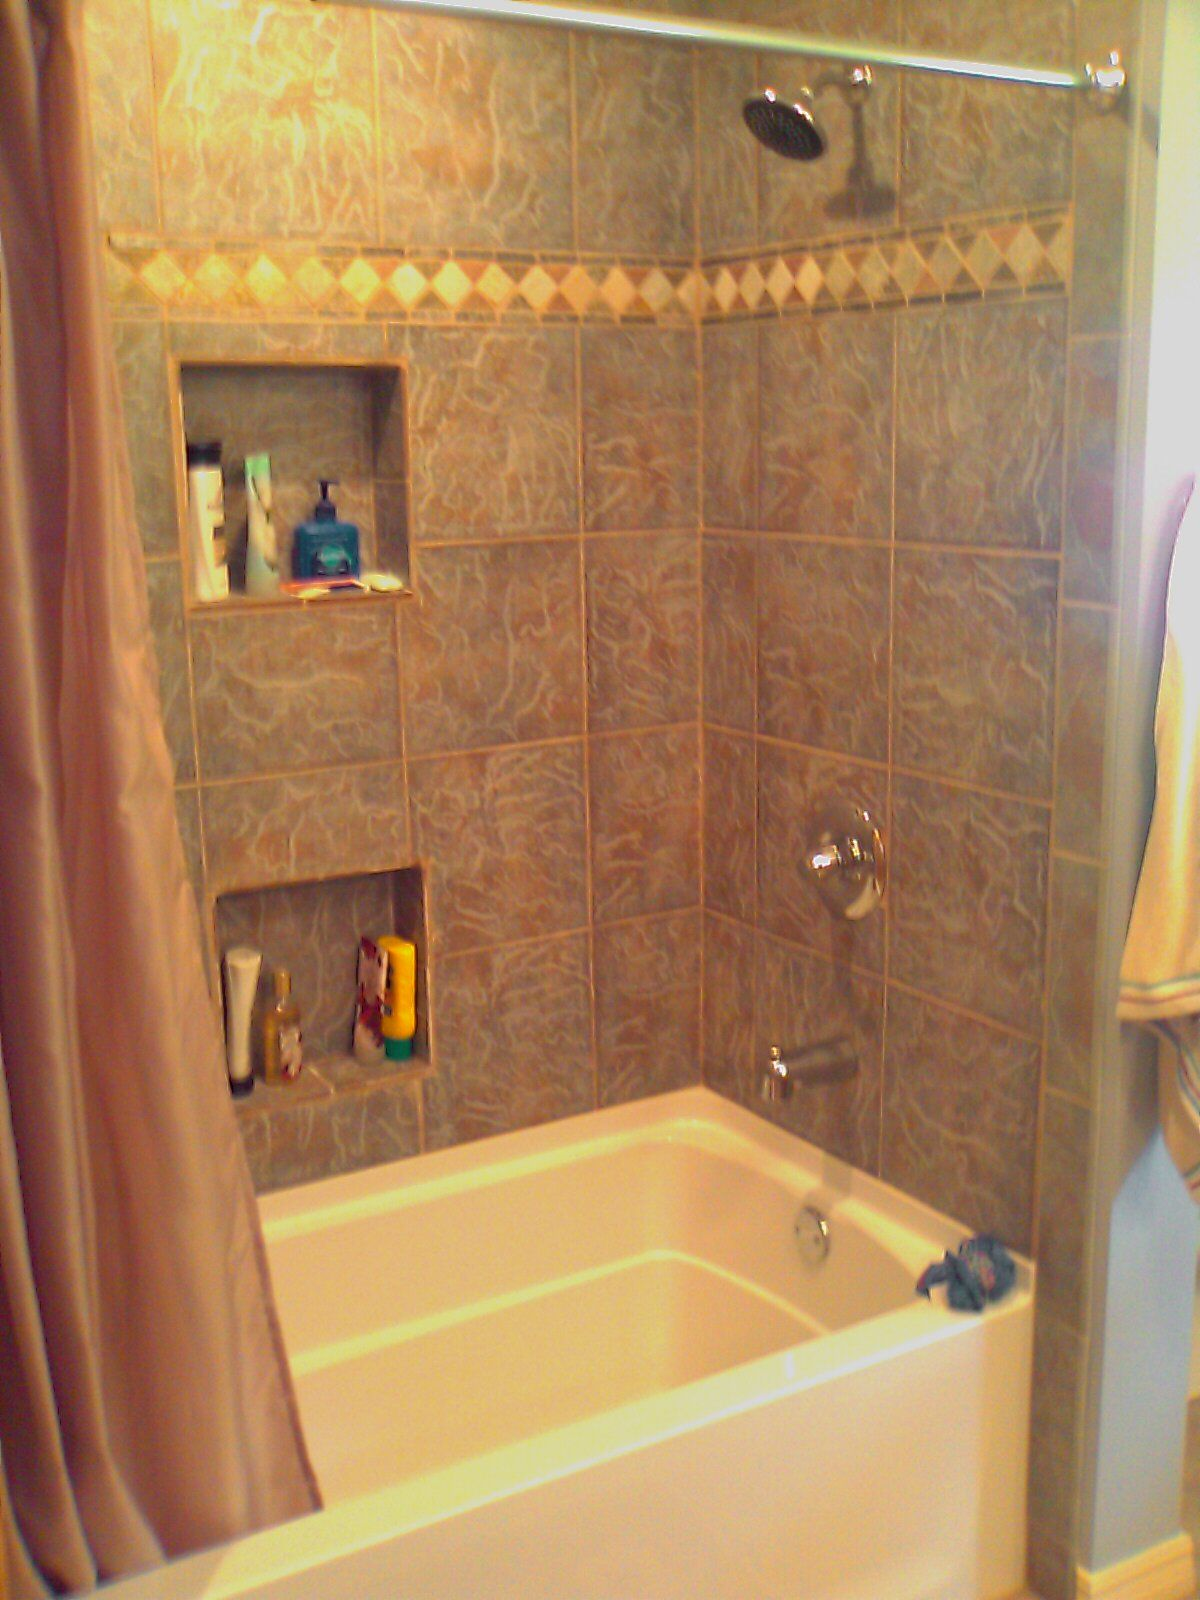 fiberglass tub with tile surround and shampoo niches | Tile Showers ...